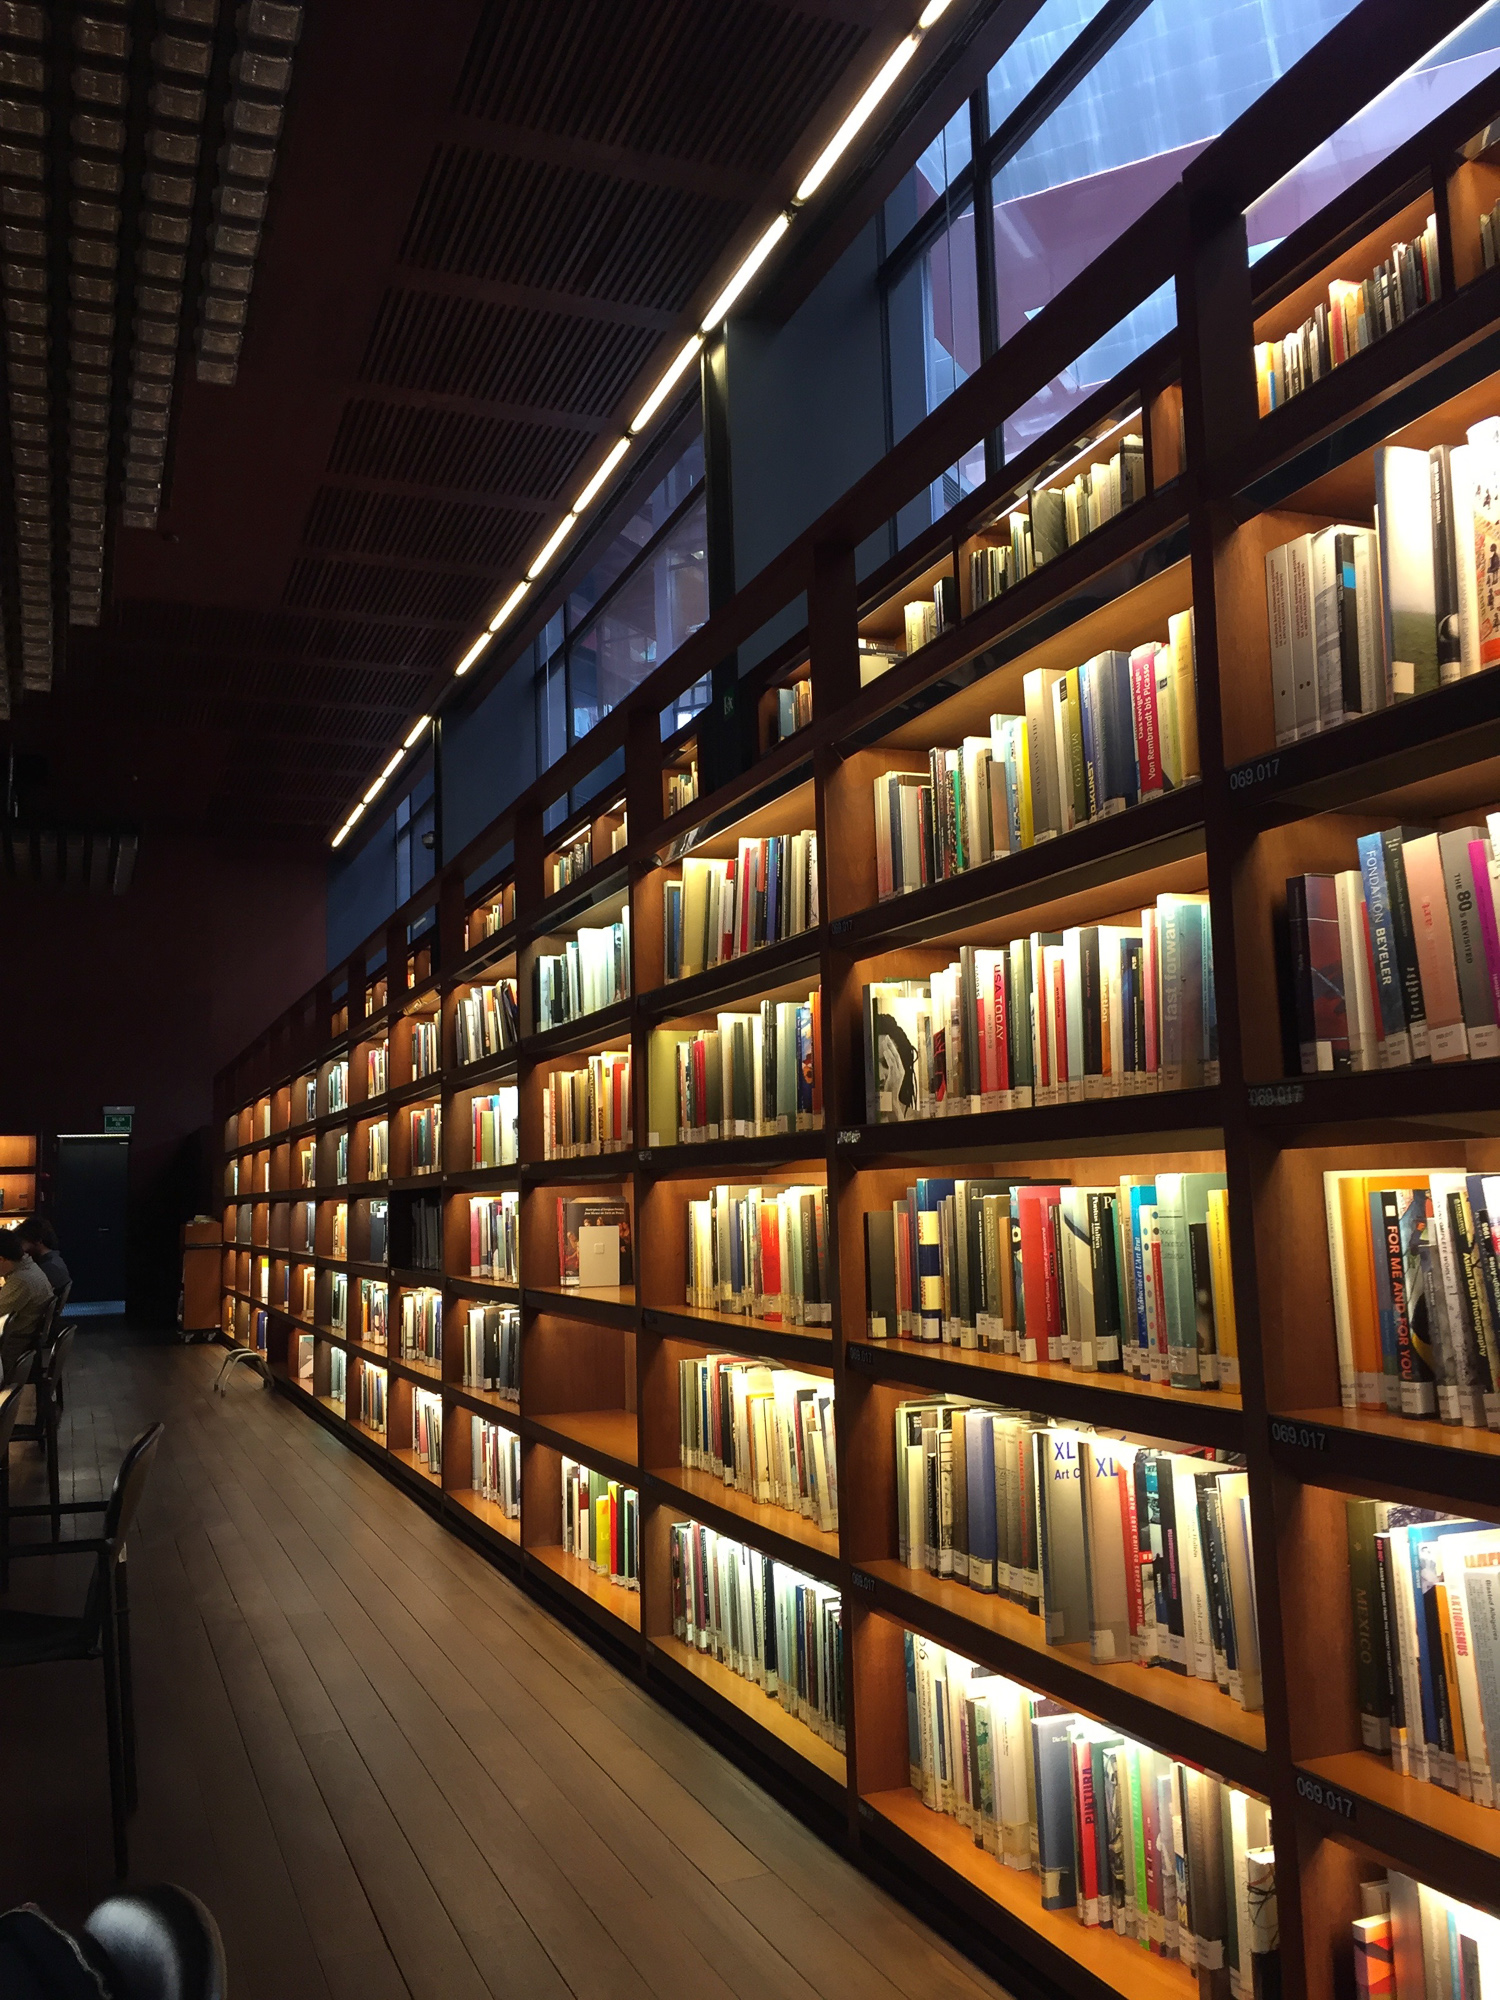 Can't be missing from this Budget Guide from Madrd: Reina Sofia library: one of my favorite places